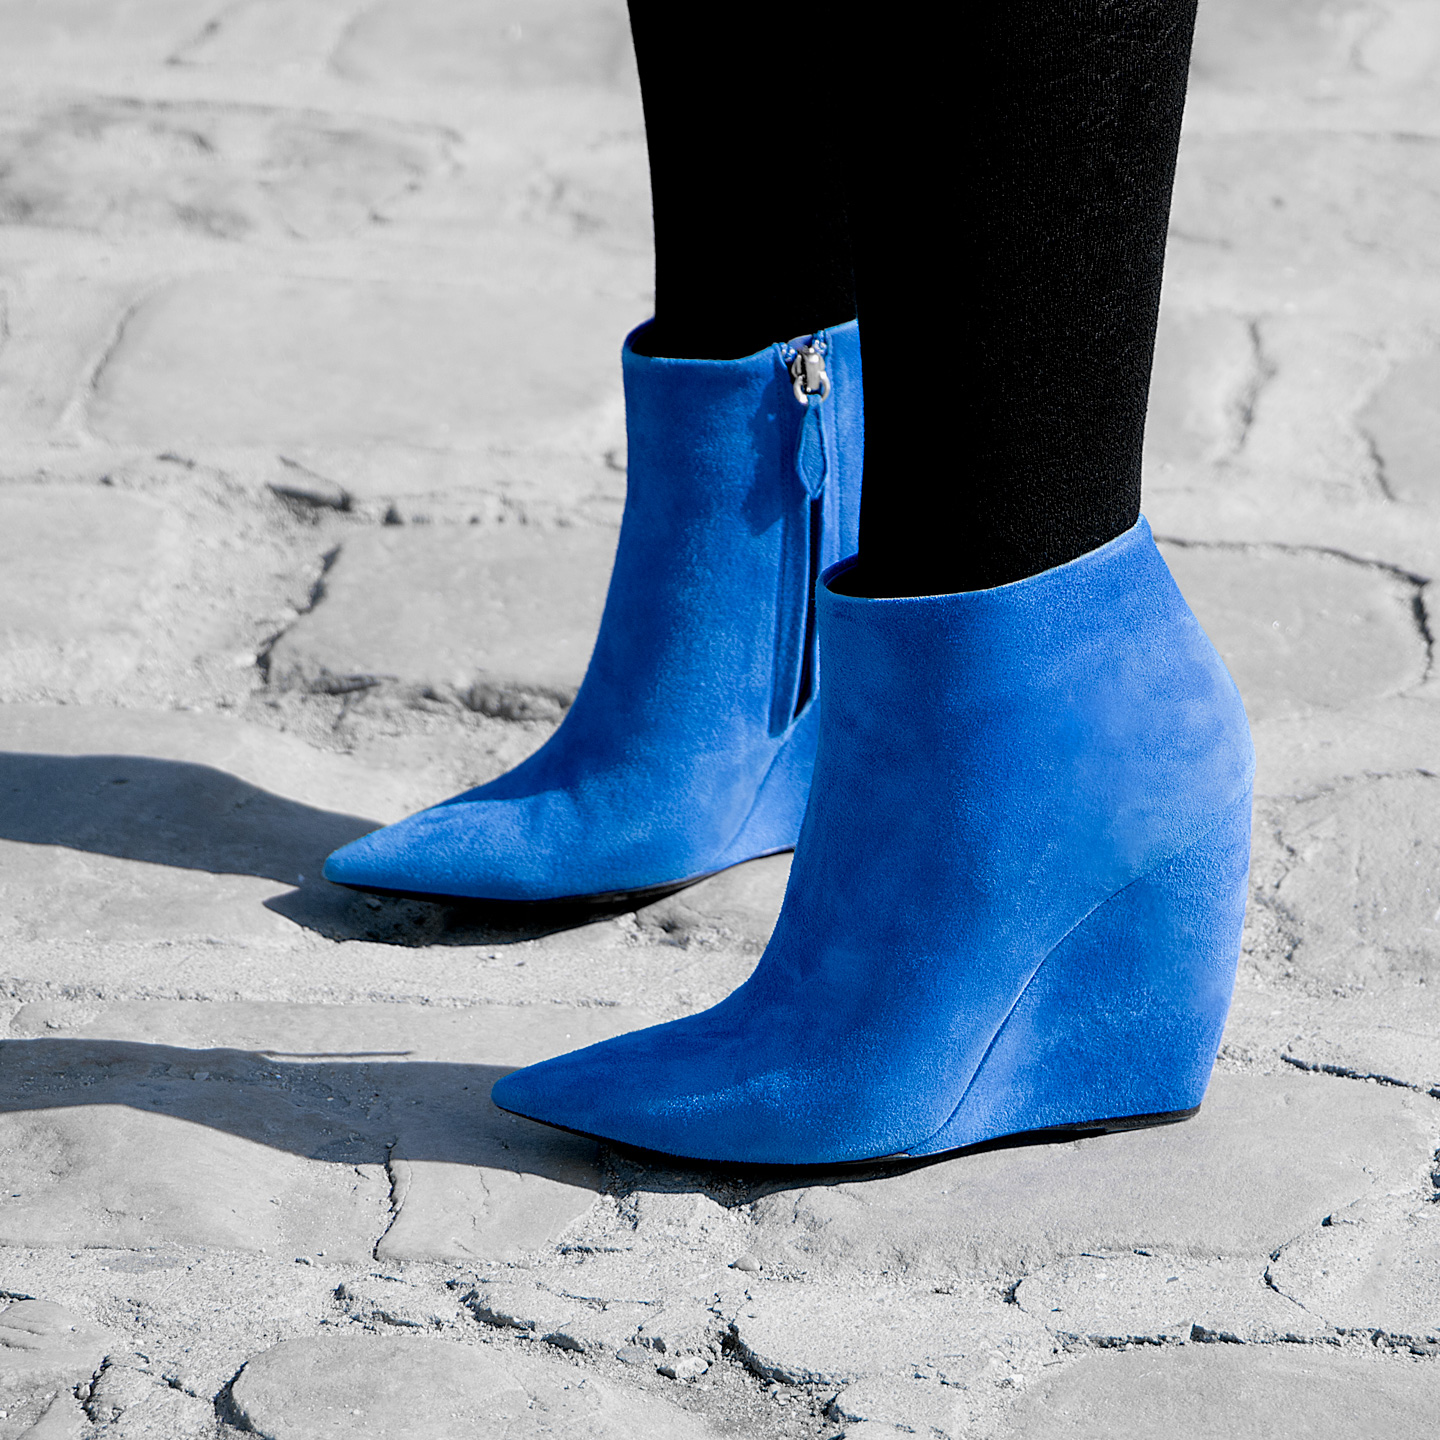 French Photographer Fashion Photography Nina Ricci Blue Suede Boots